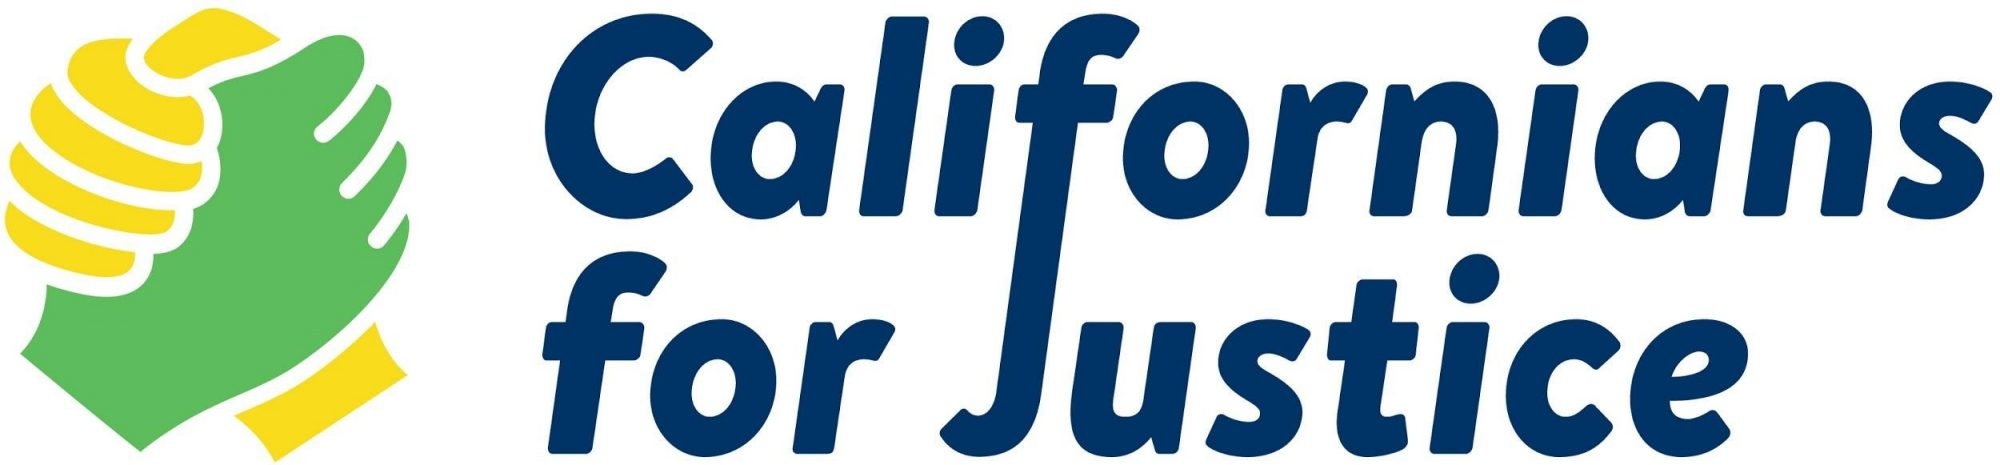 Californians for Justice Education Fund